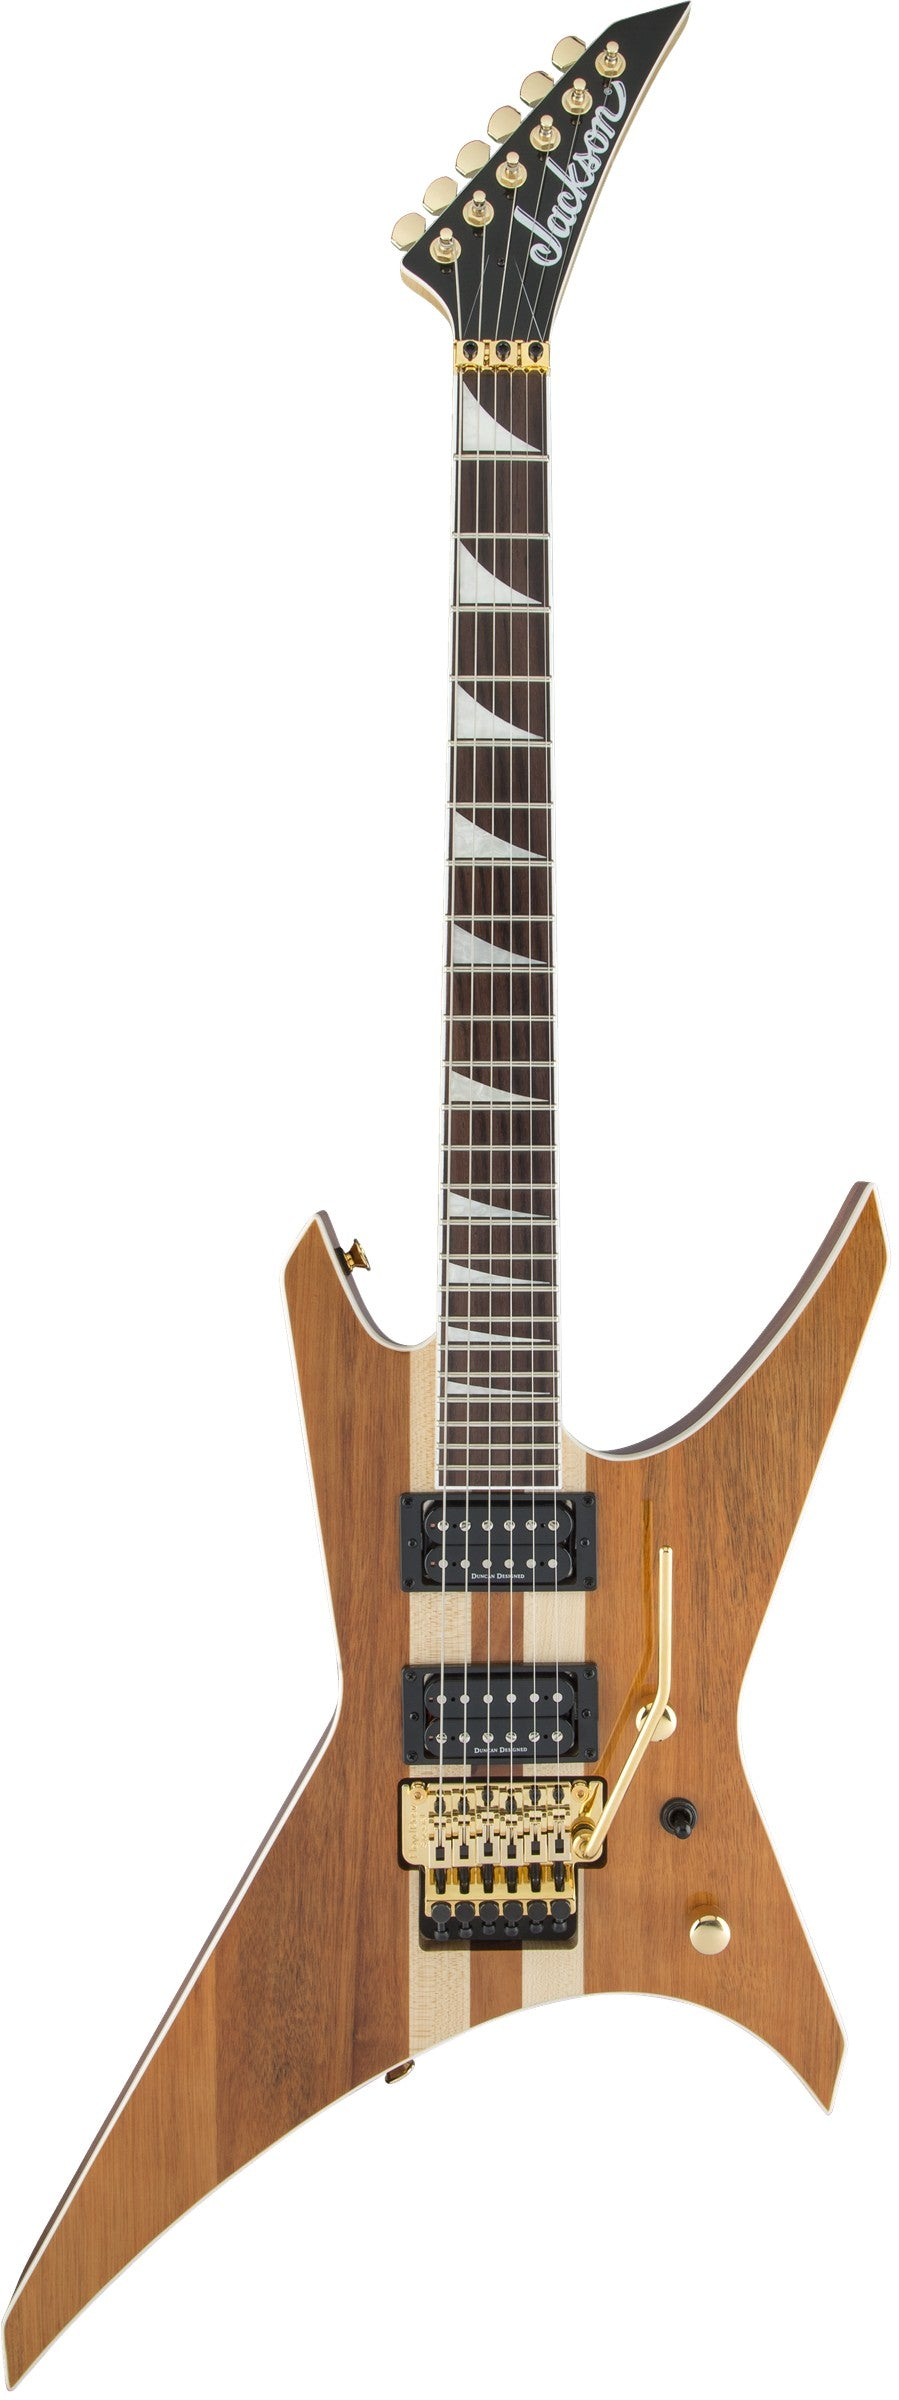 Jackson X Series Warrior WRX24 Natural Electric Guitar With Rosewood Fingerboard